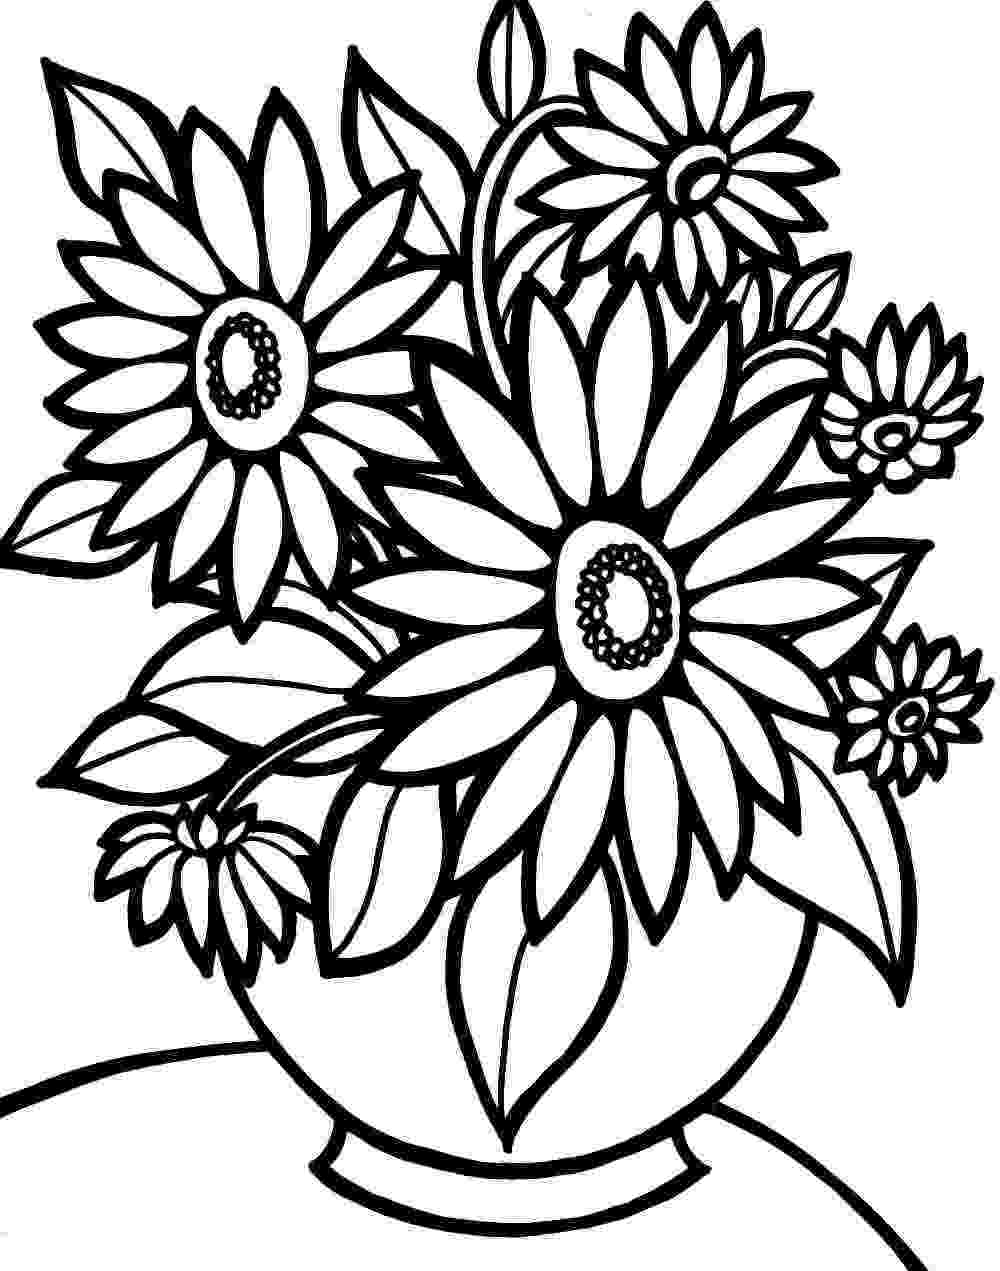 flower coloring pages printables flower page printable coloring sheets page flowers coloring printables pages flower